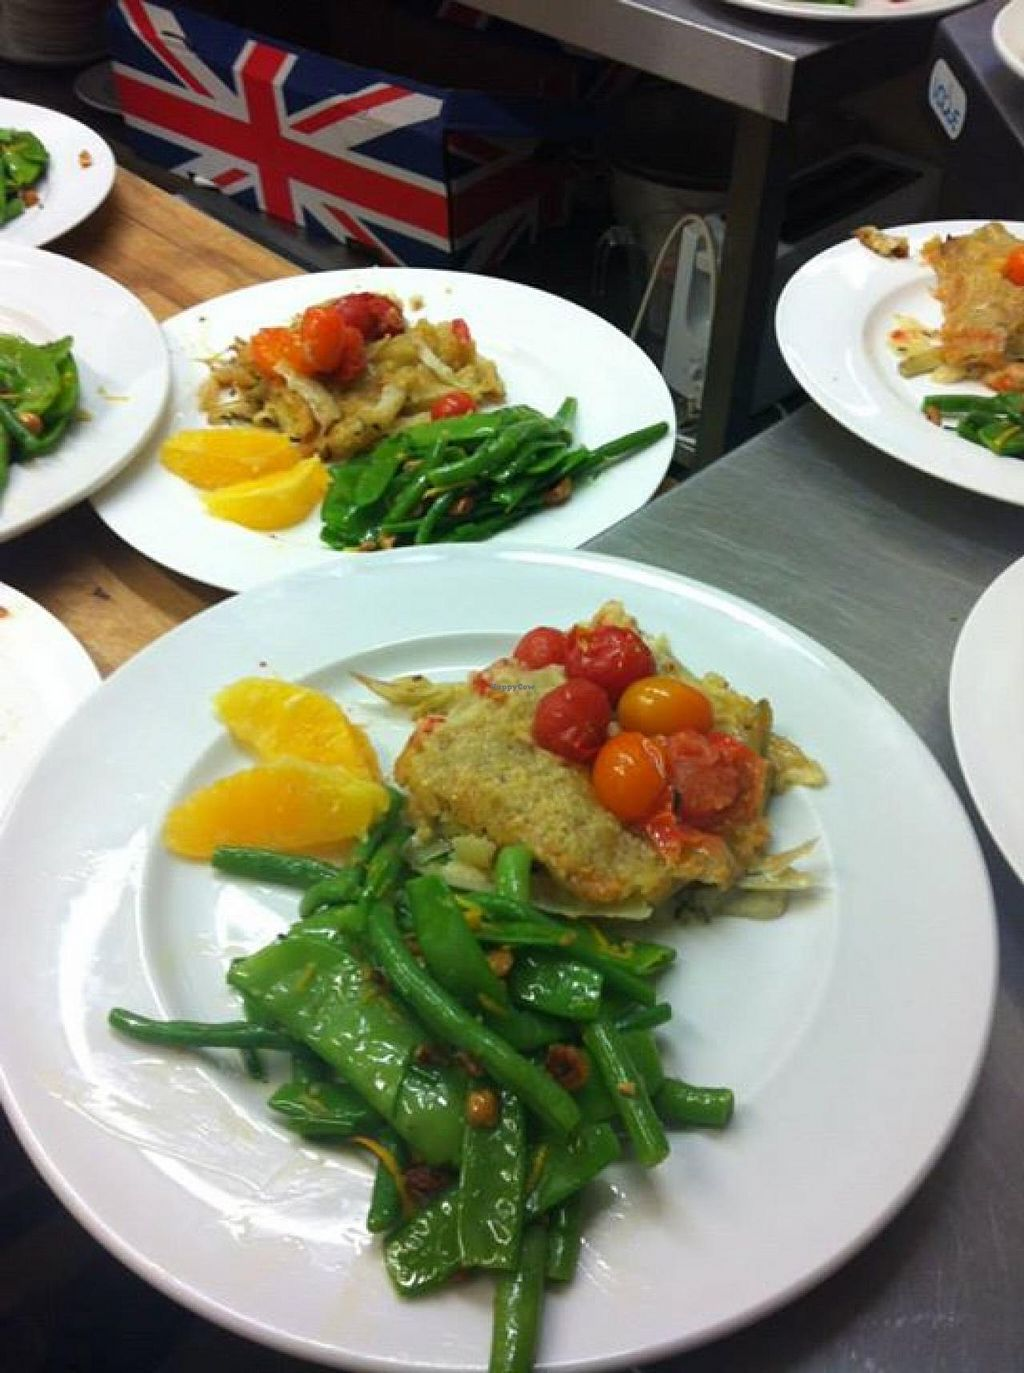 """Photo of Infamous Catering  by <a href=""""/members/profile/community"""">community</a> <br/>Infamous Catering <br/> April 8, 2015  - <a href='/contact/abuse/image/57032/98382'>Report</a>"""